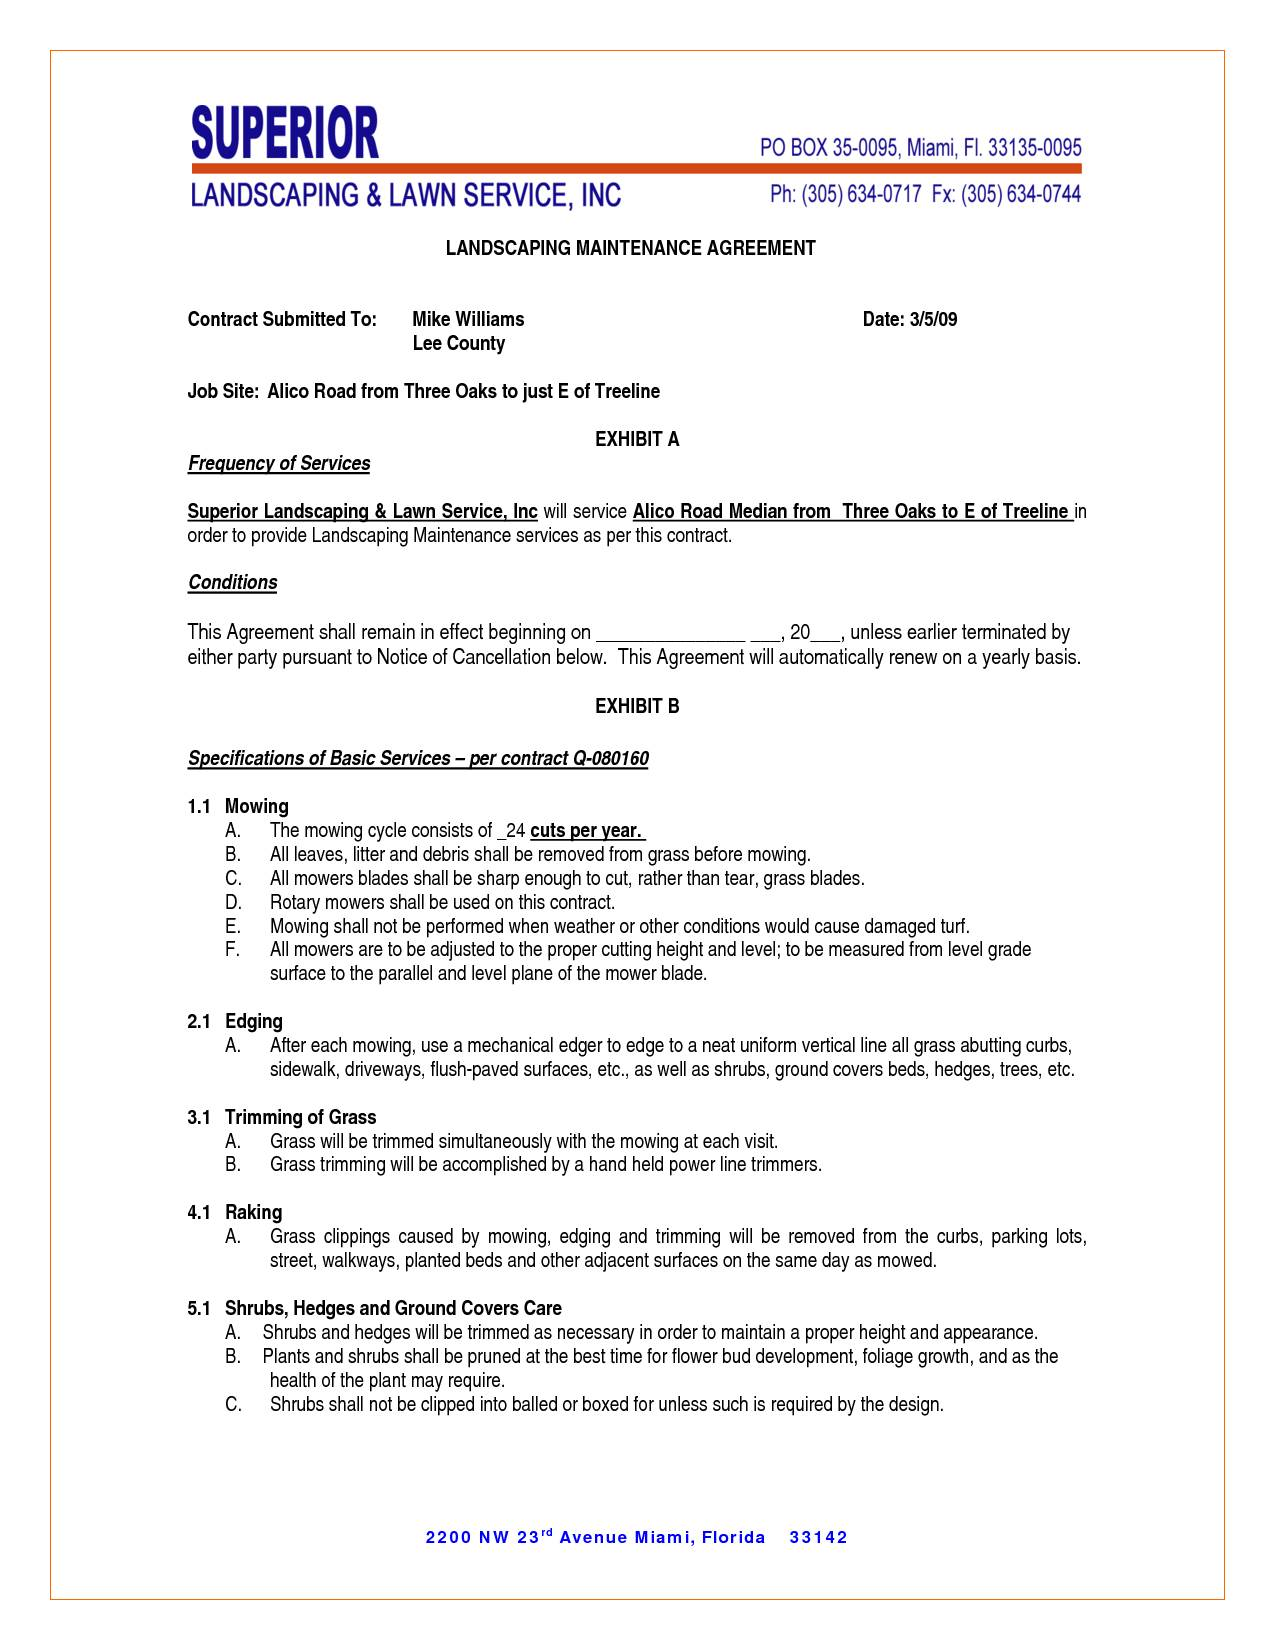 Landscape Maintenance Agreement Contract